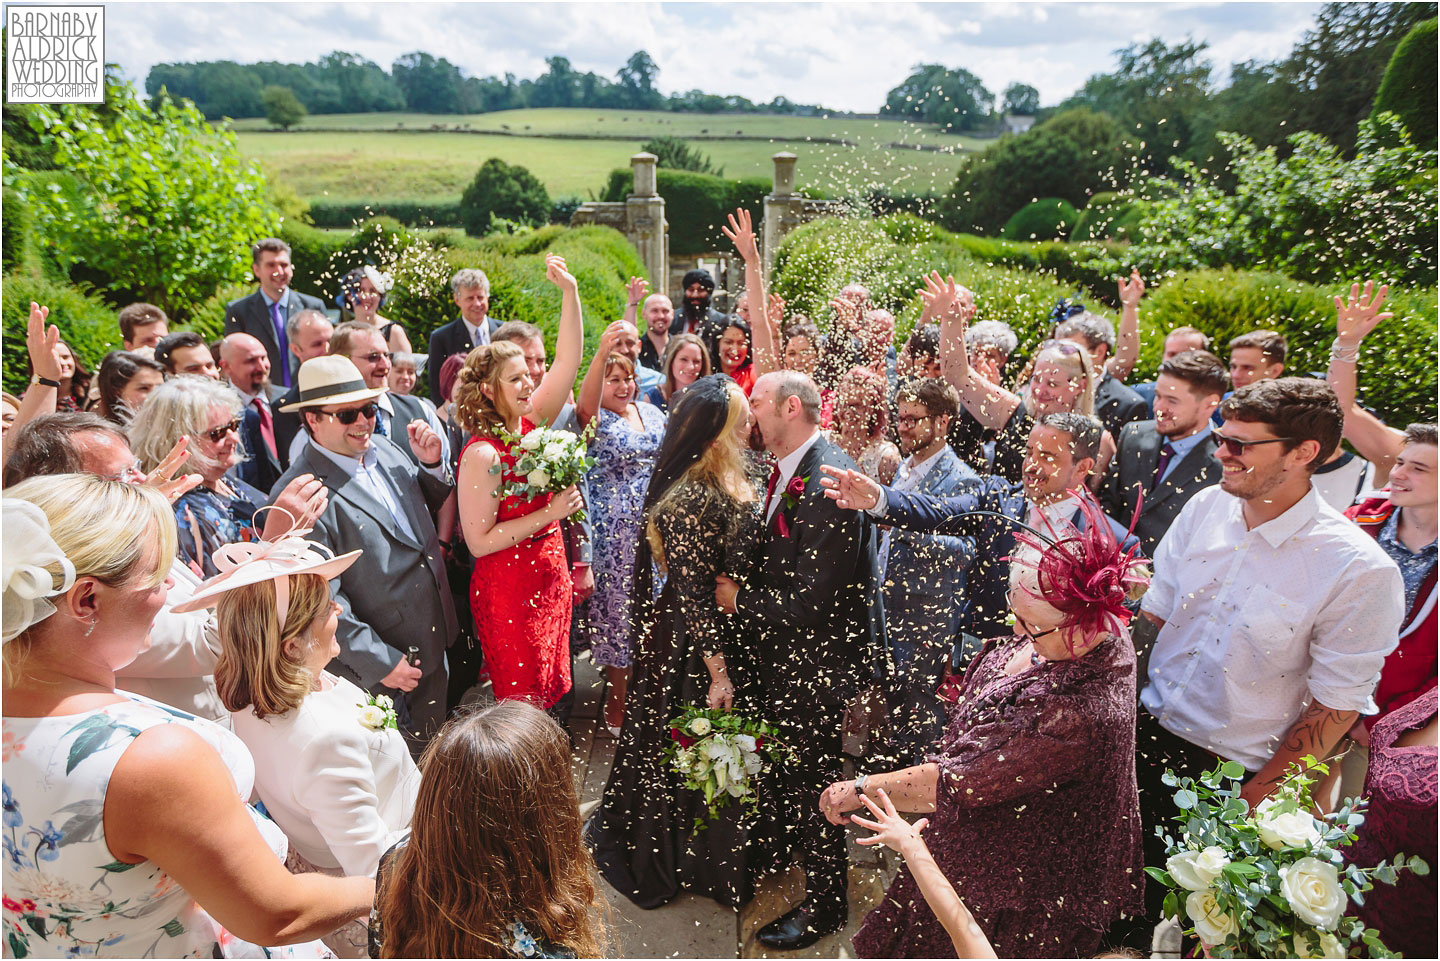 A wedding photo at Fountains Abbey of a confetti throw